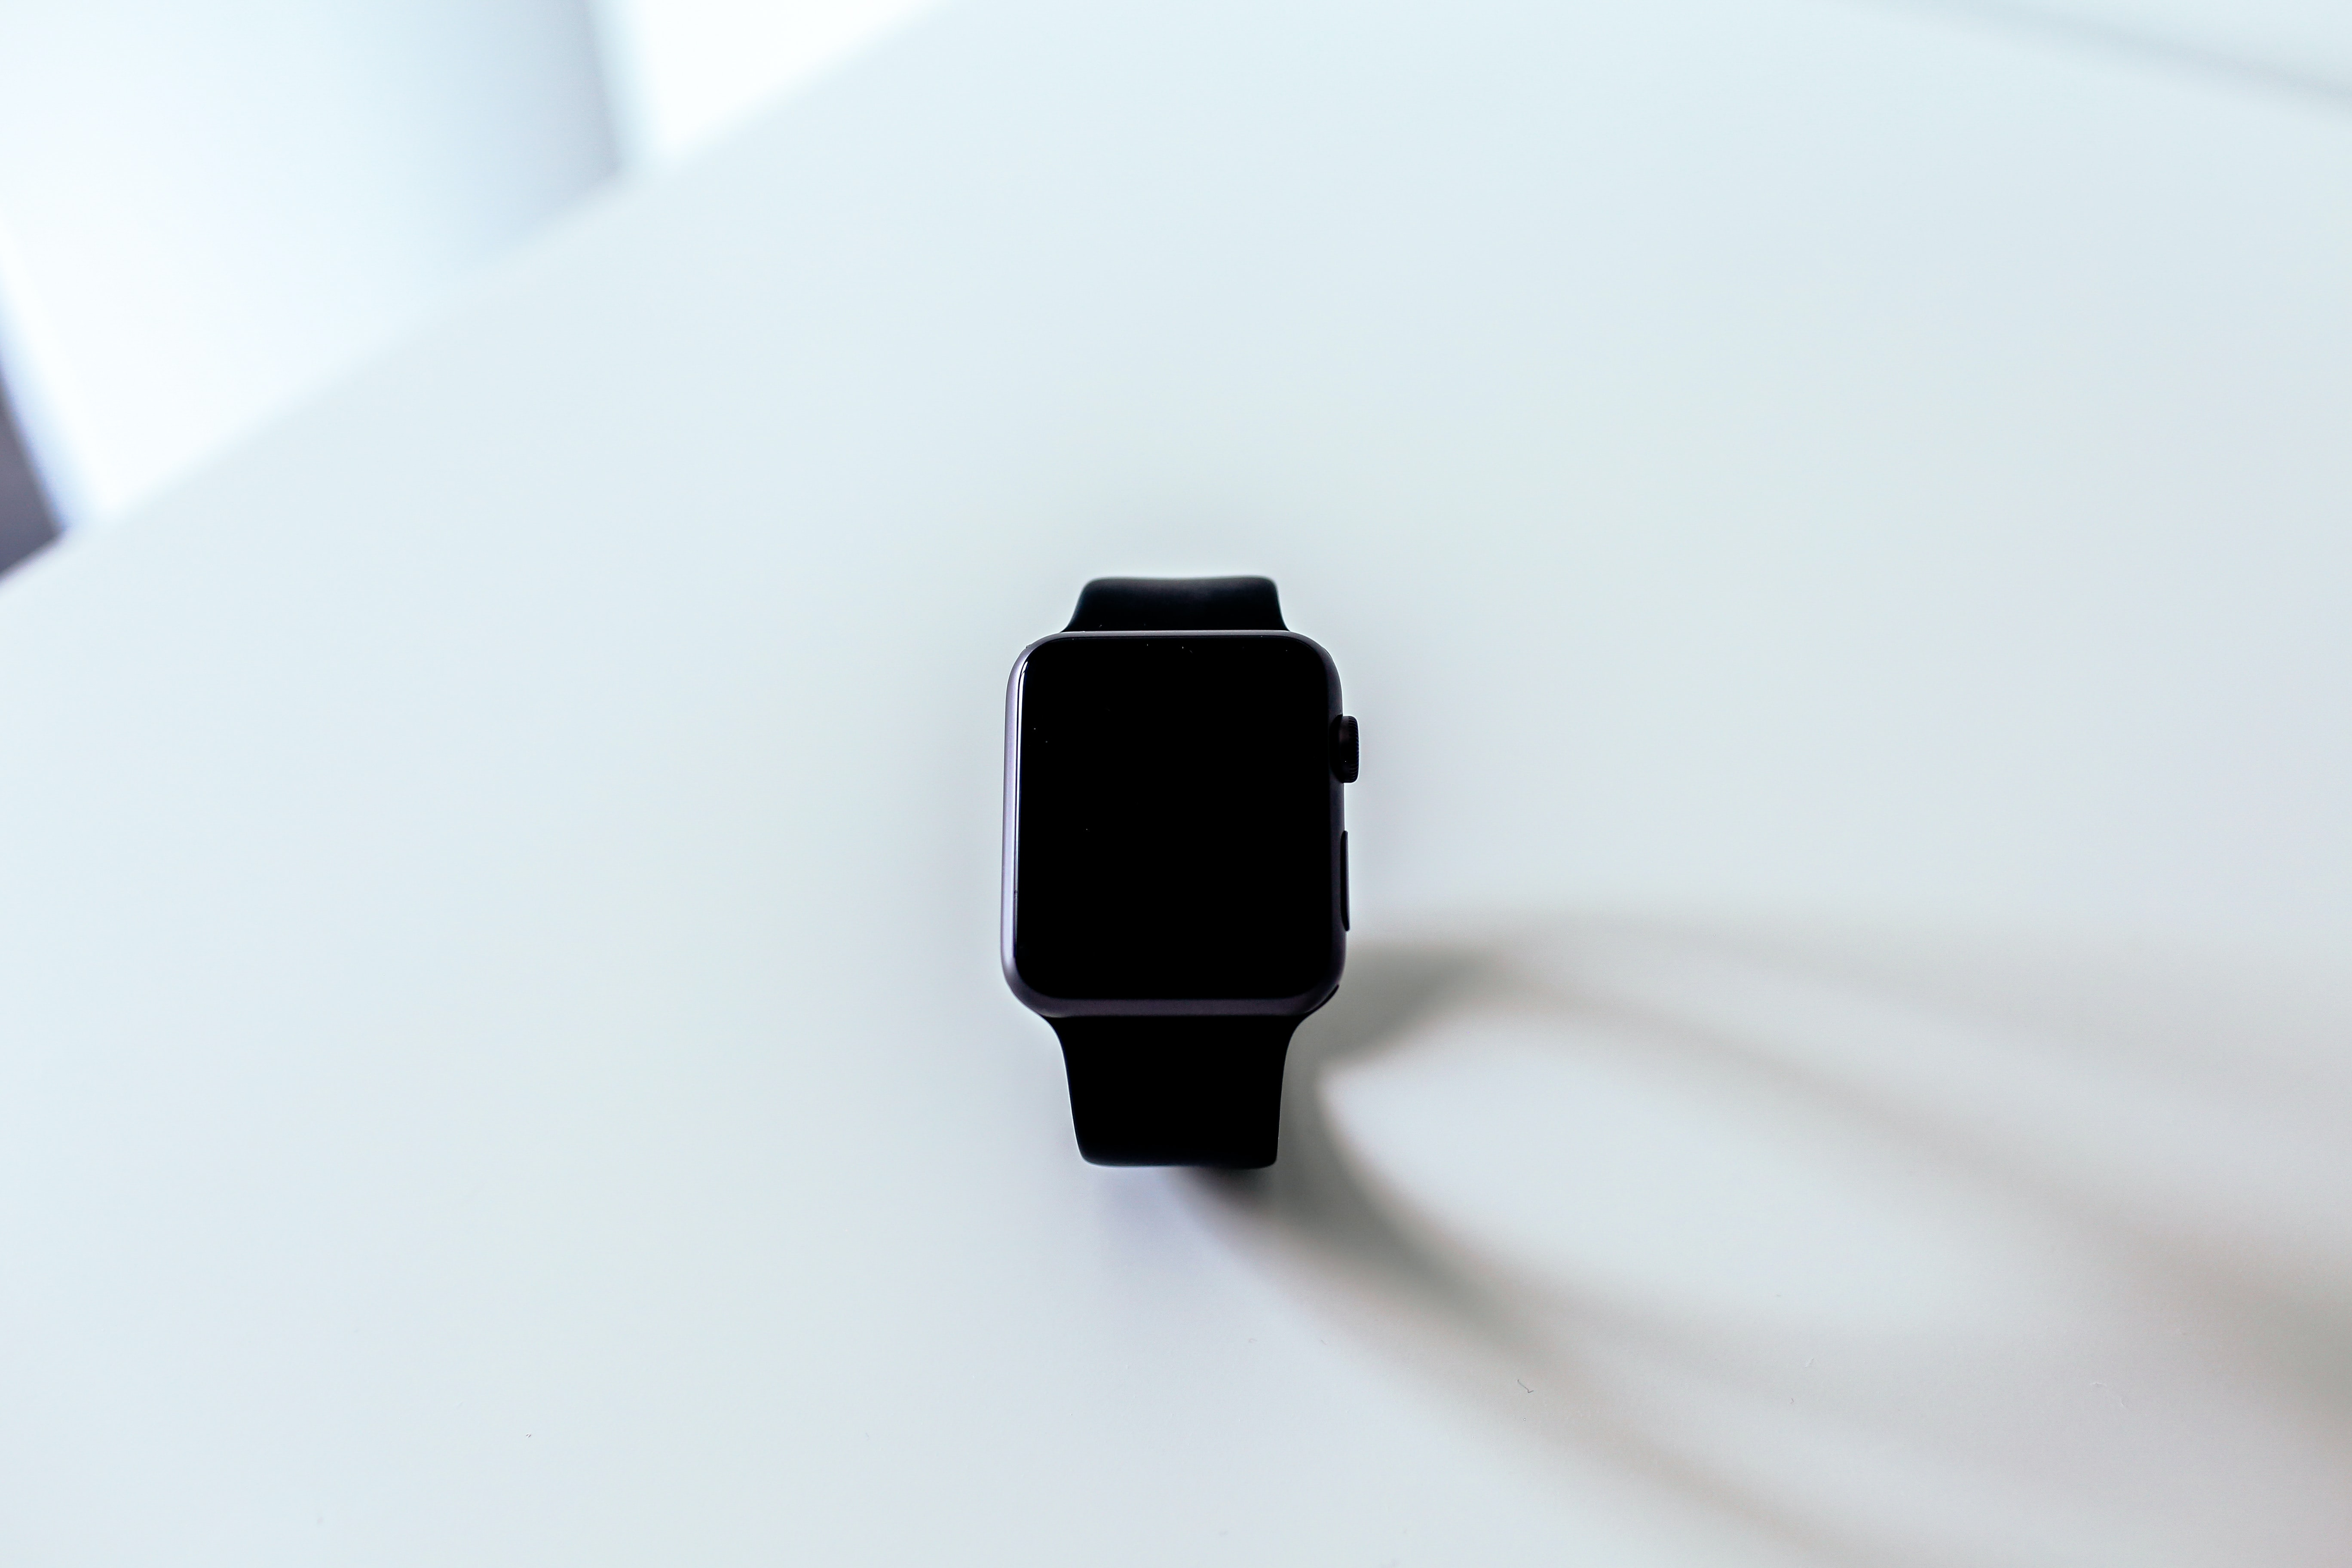 Apple wrist watch with a black screen sits on a white surface and casts a shadow